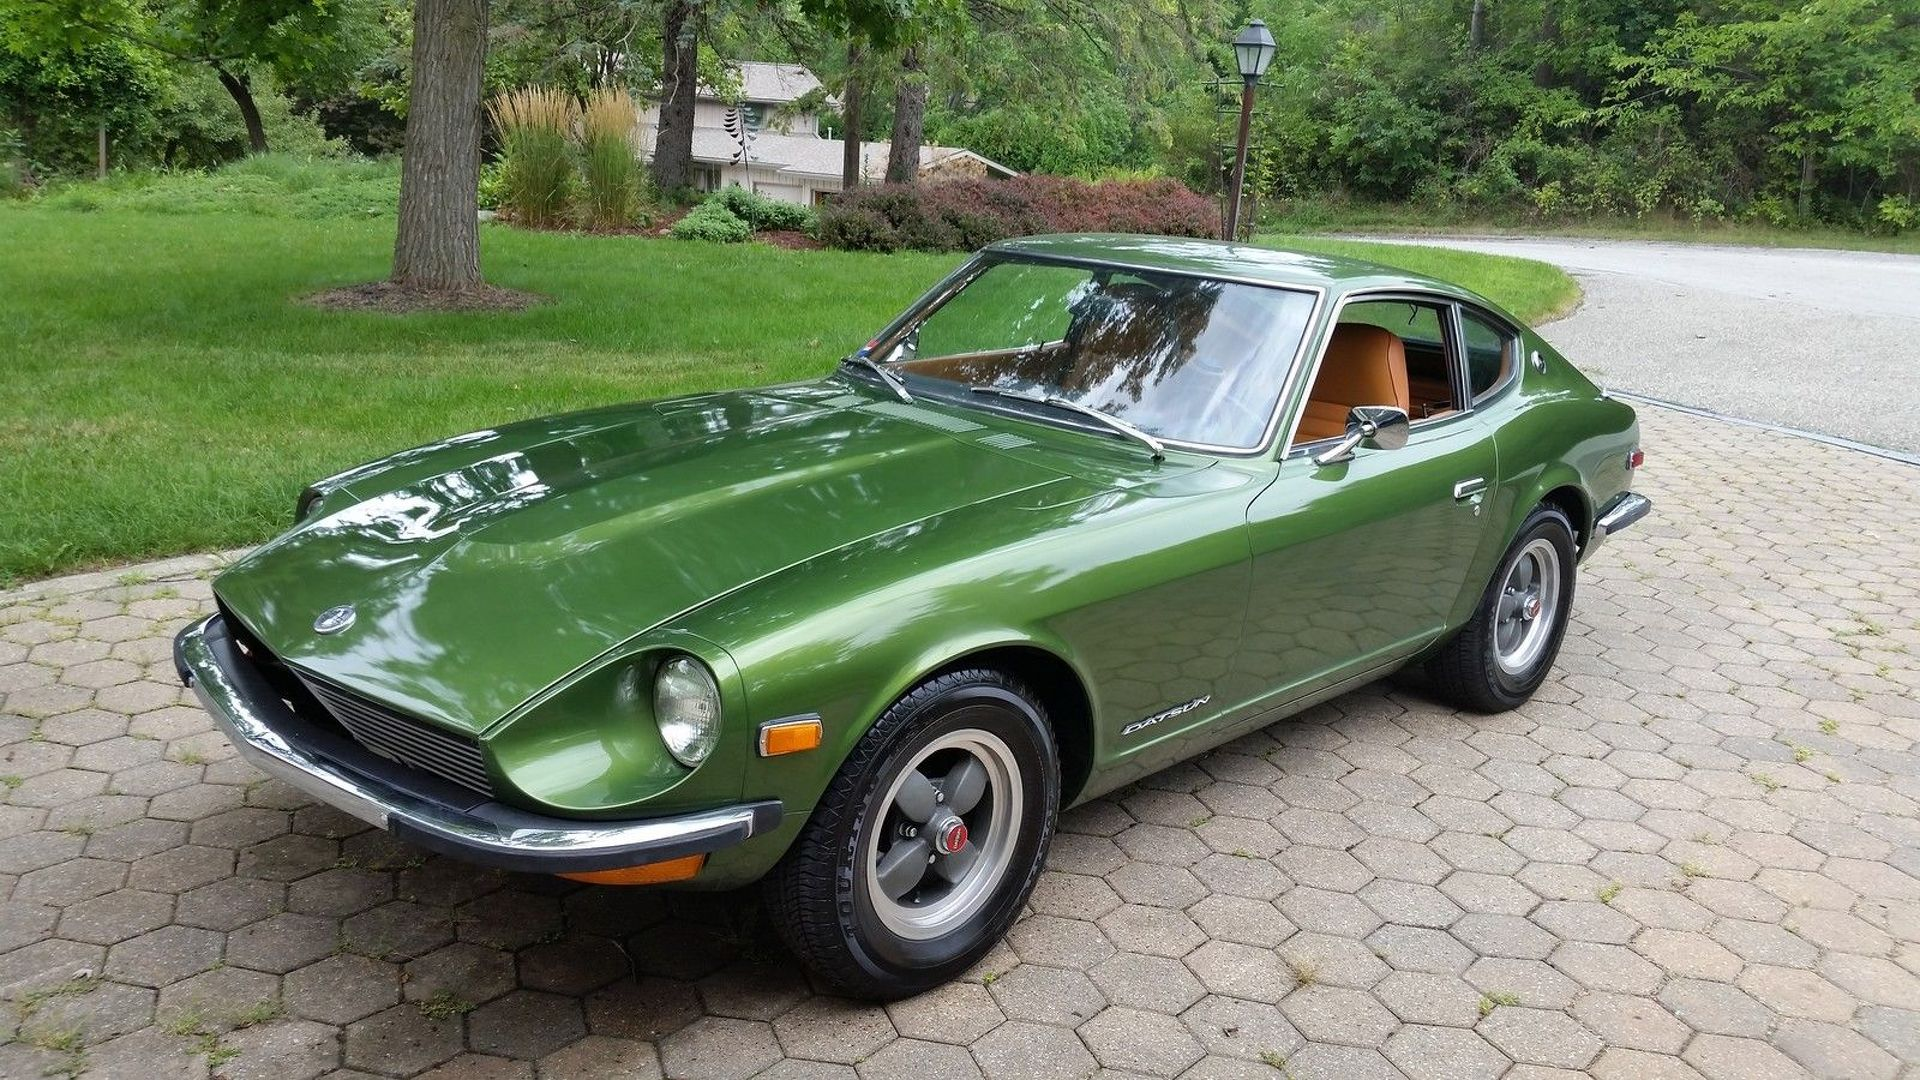 Subaru Ann Arbor >> For Sale: Immaculate 1973 Datsun 240Z in the USA | PerformanceDrive